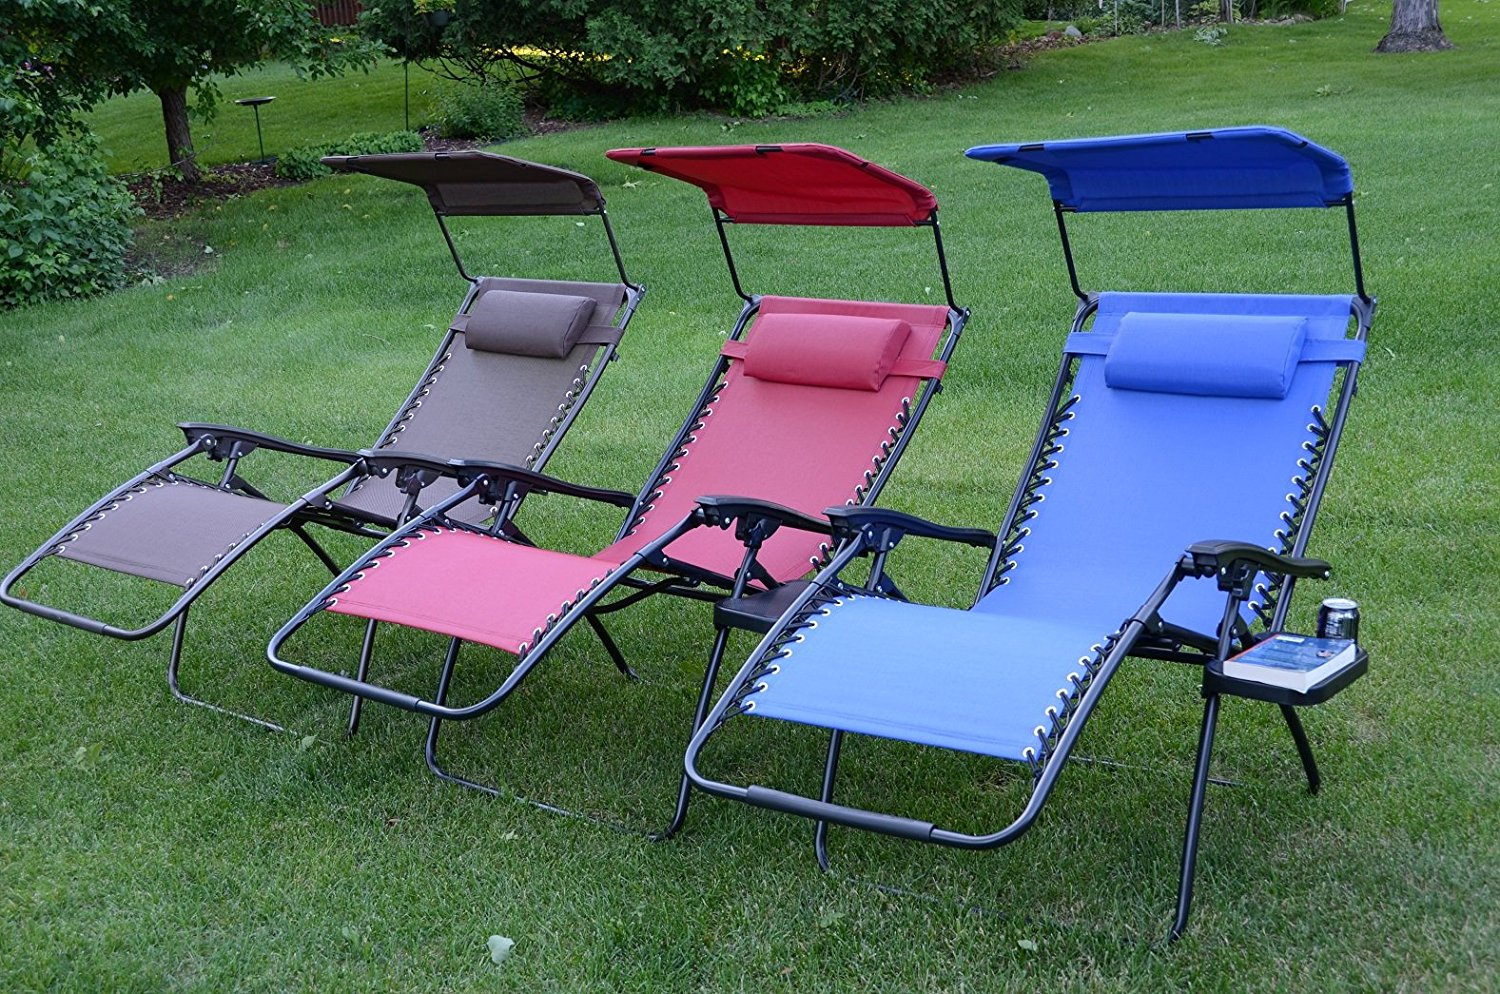 Oversized Zero Gravity Chair With Canopy Our Review Of The 10 Best Outdoor Zero Gravity Recliners